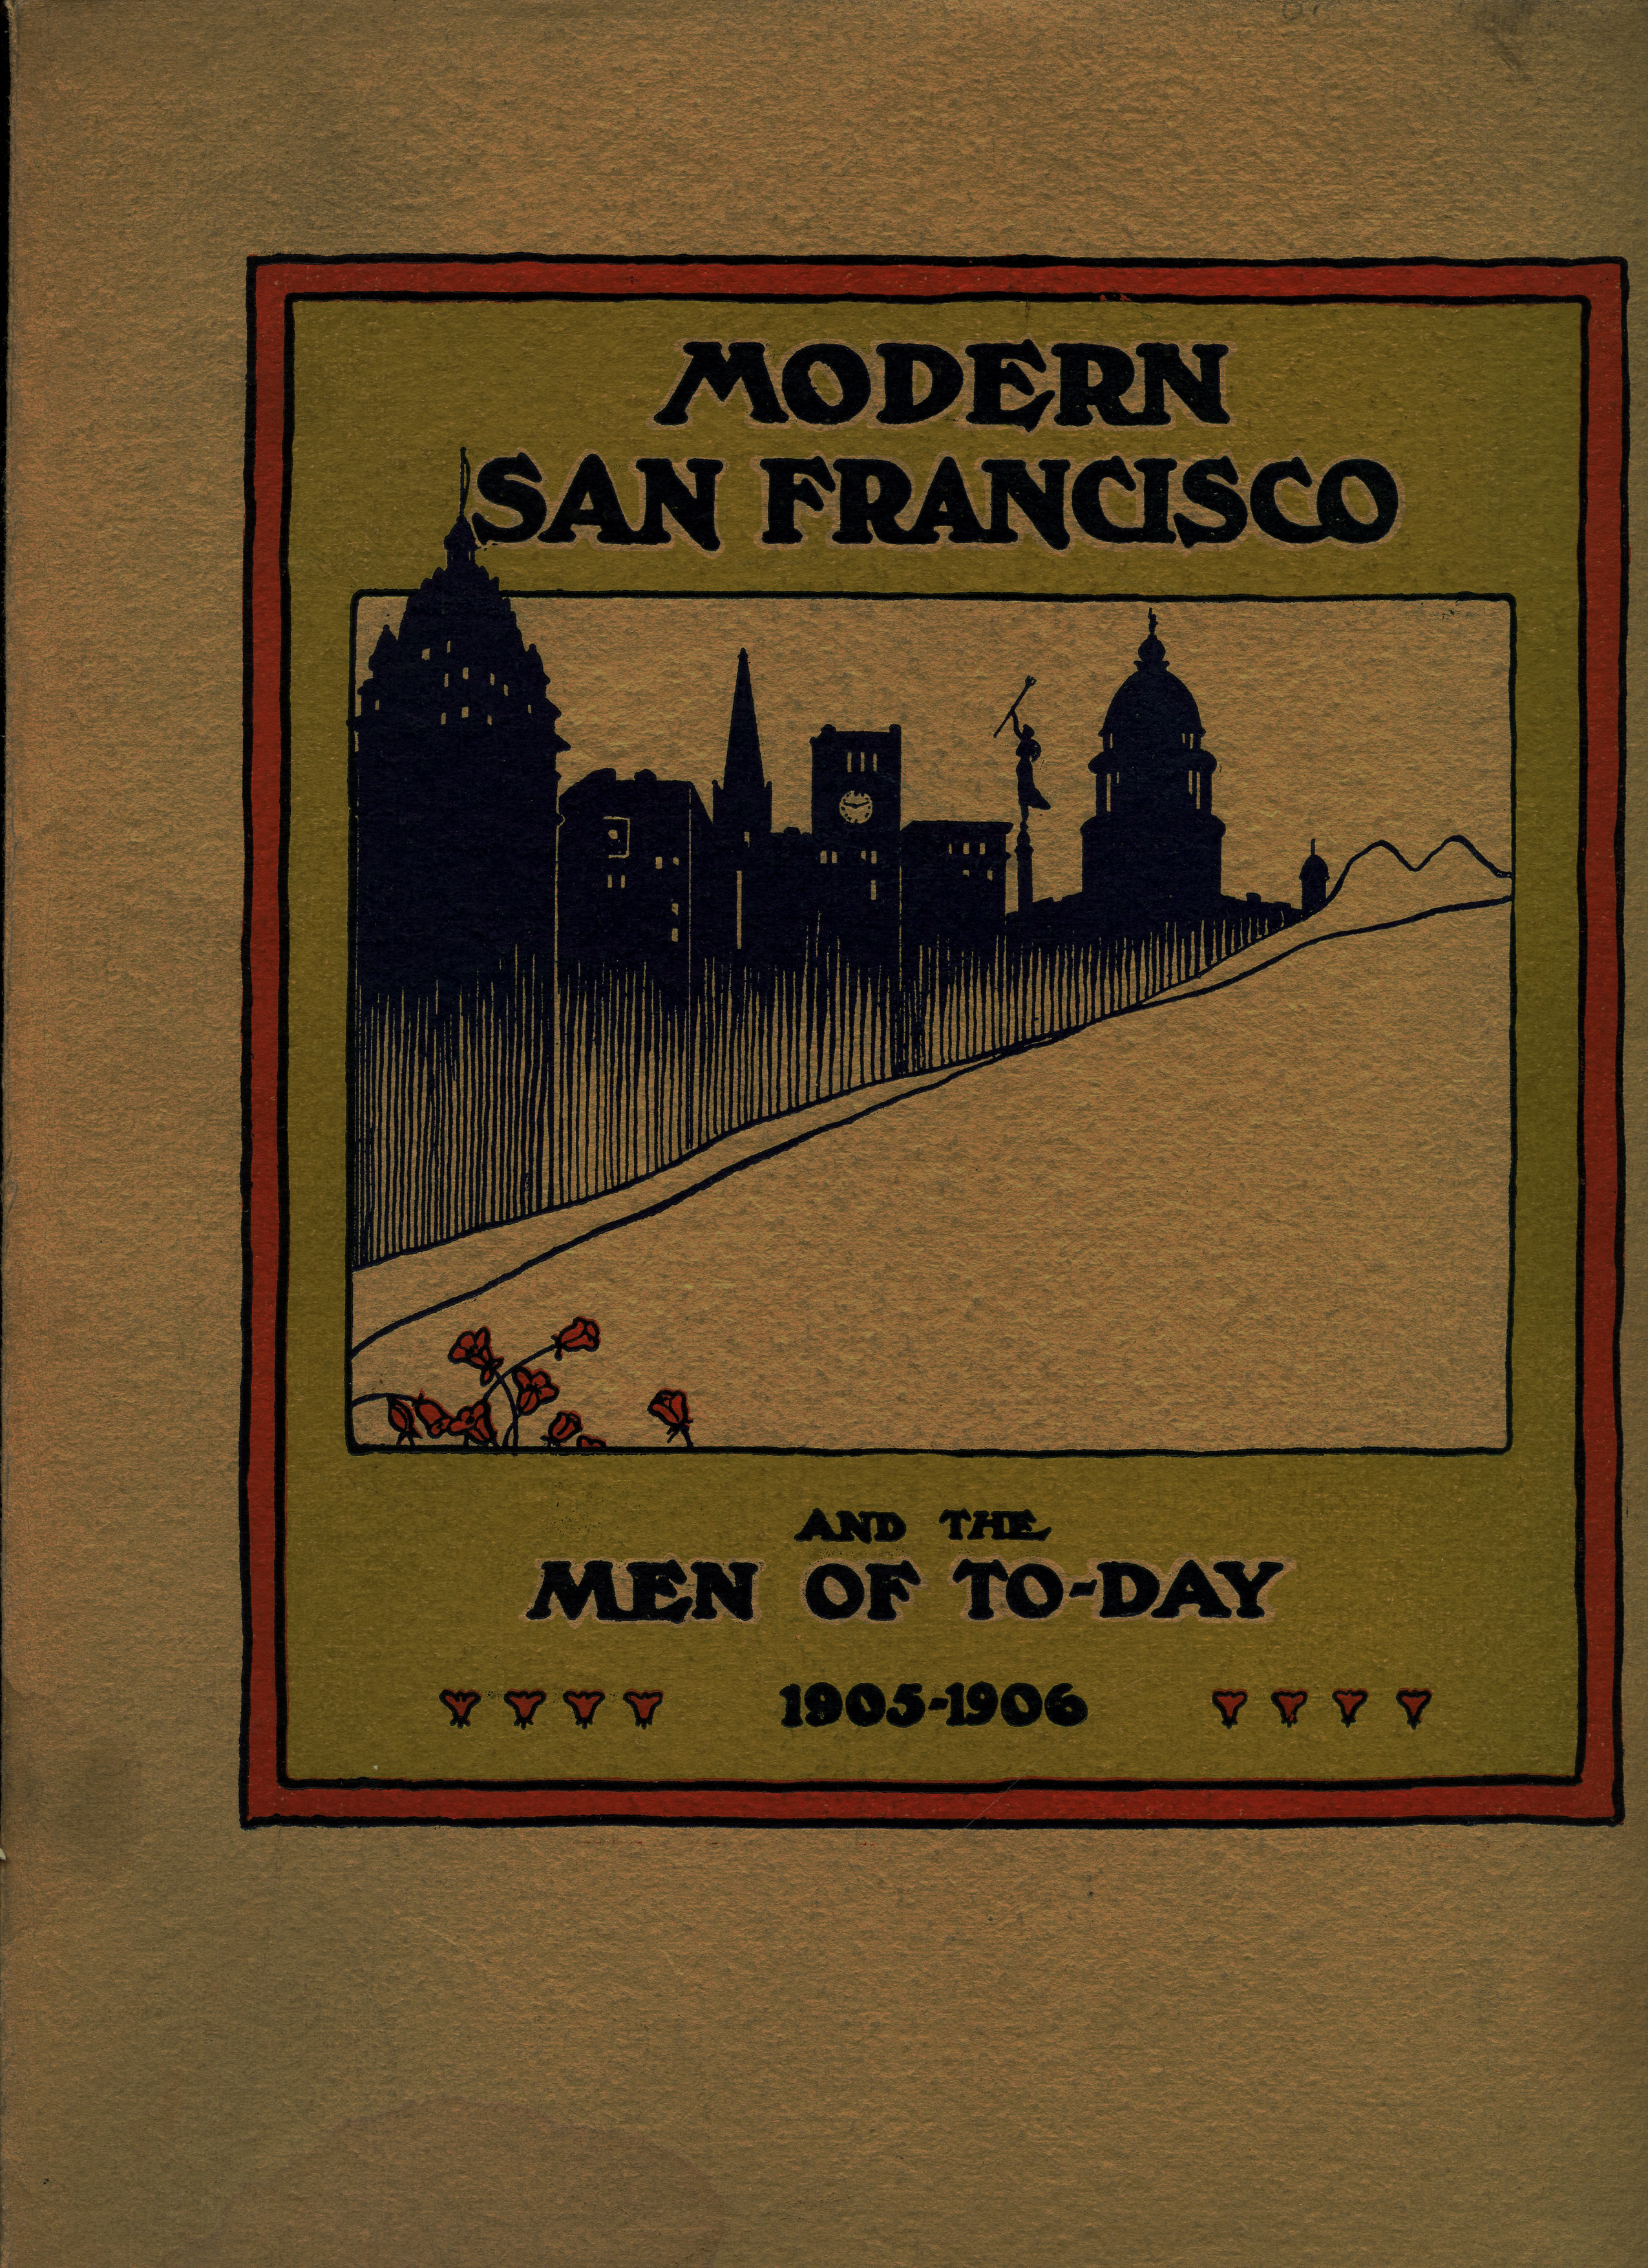 Image for Modern San Francisco and the Men of To-Day 1905-1906